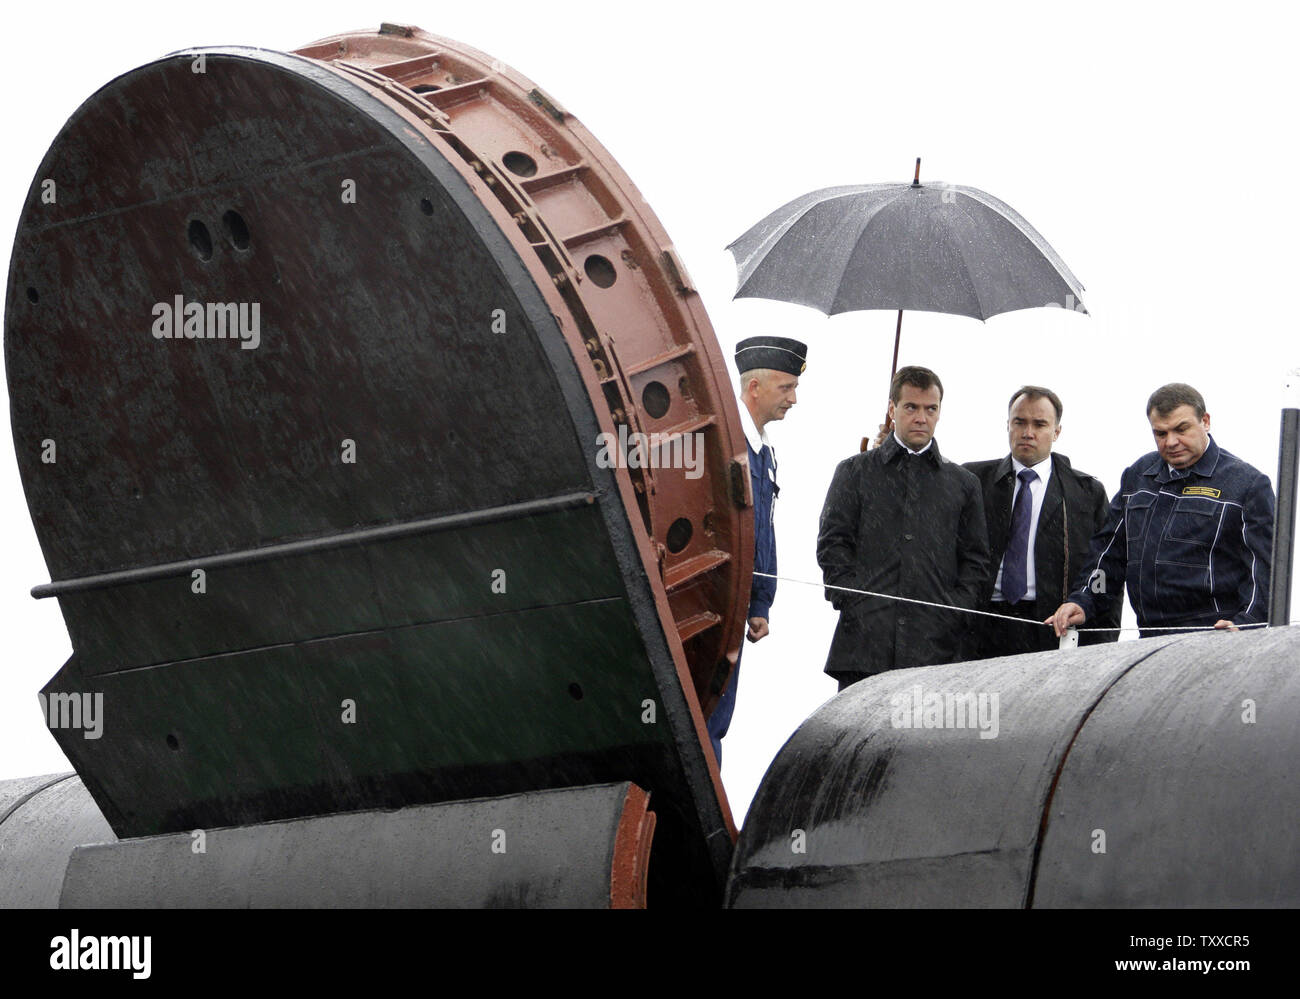 President Dmitry Medvedev (C) with Defense Minister Anatoly Serdyukov (R) visits the 'St. George the Victor' nuclear powered submarine at the Russian Pacific Fleet submarine base at Krasheninnikov Harbor on the Kamchatka Peninsula in the Russian Far East on September 25, 2008. (UPI Photo/Anatoli Zhdanov) - Stock Image